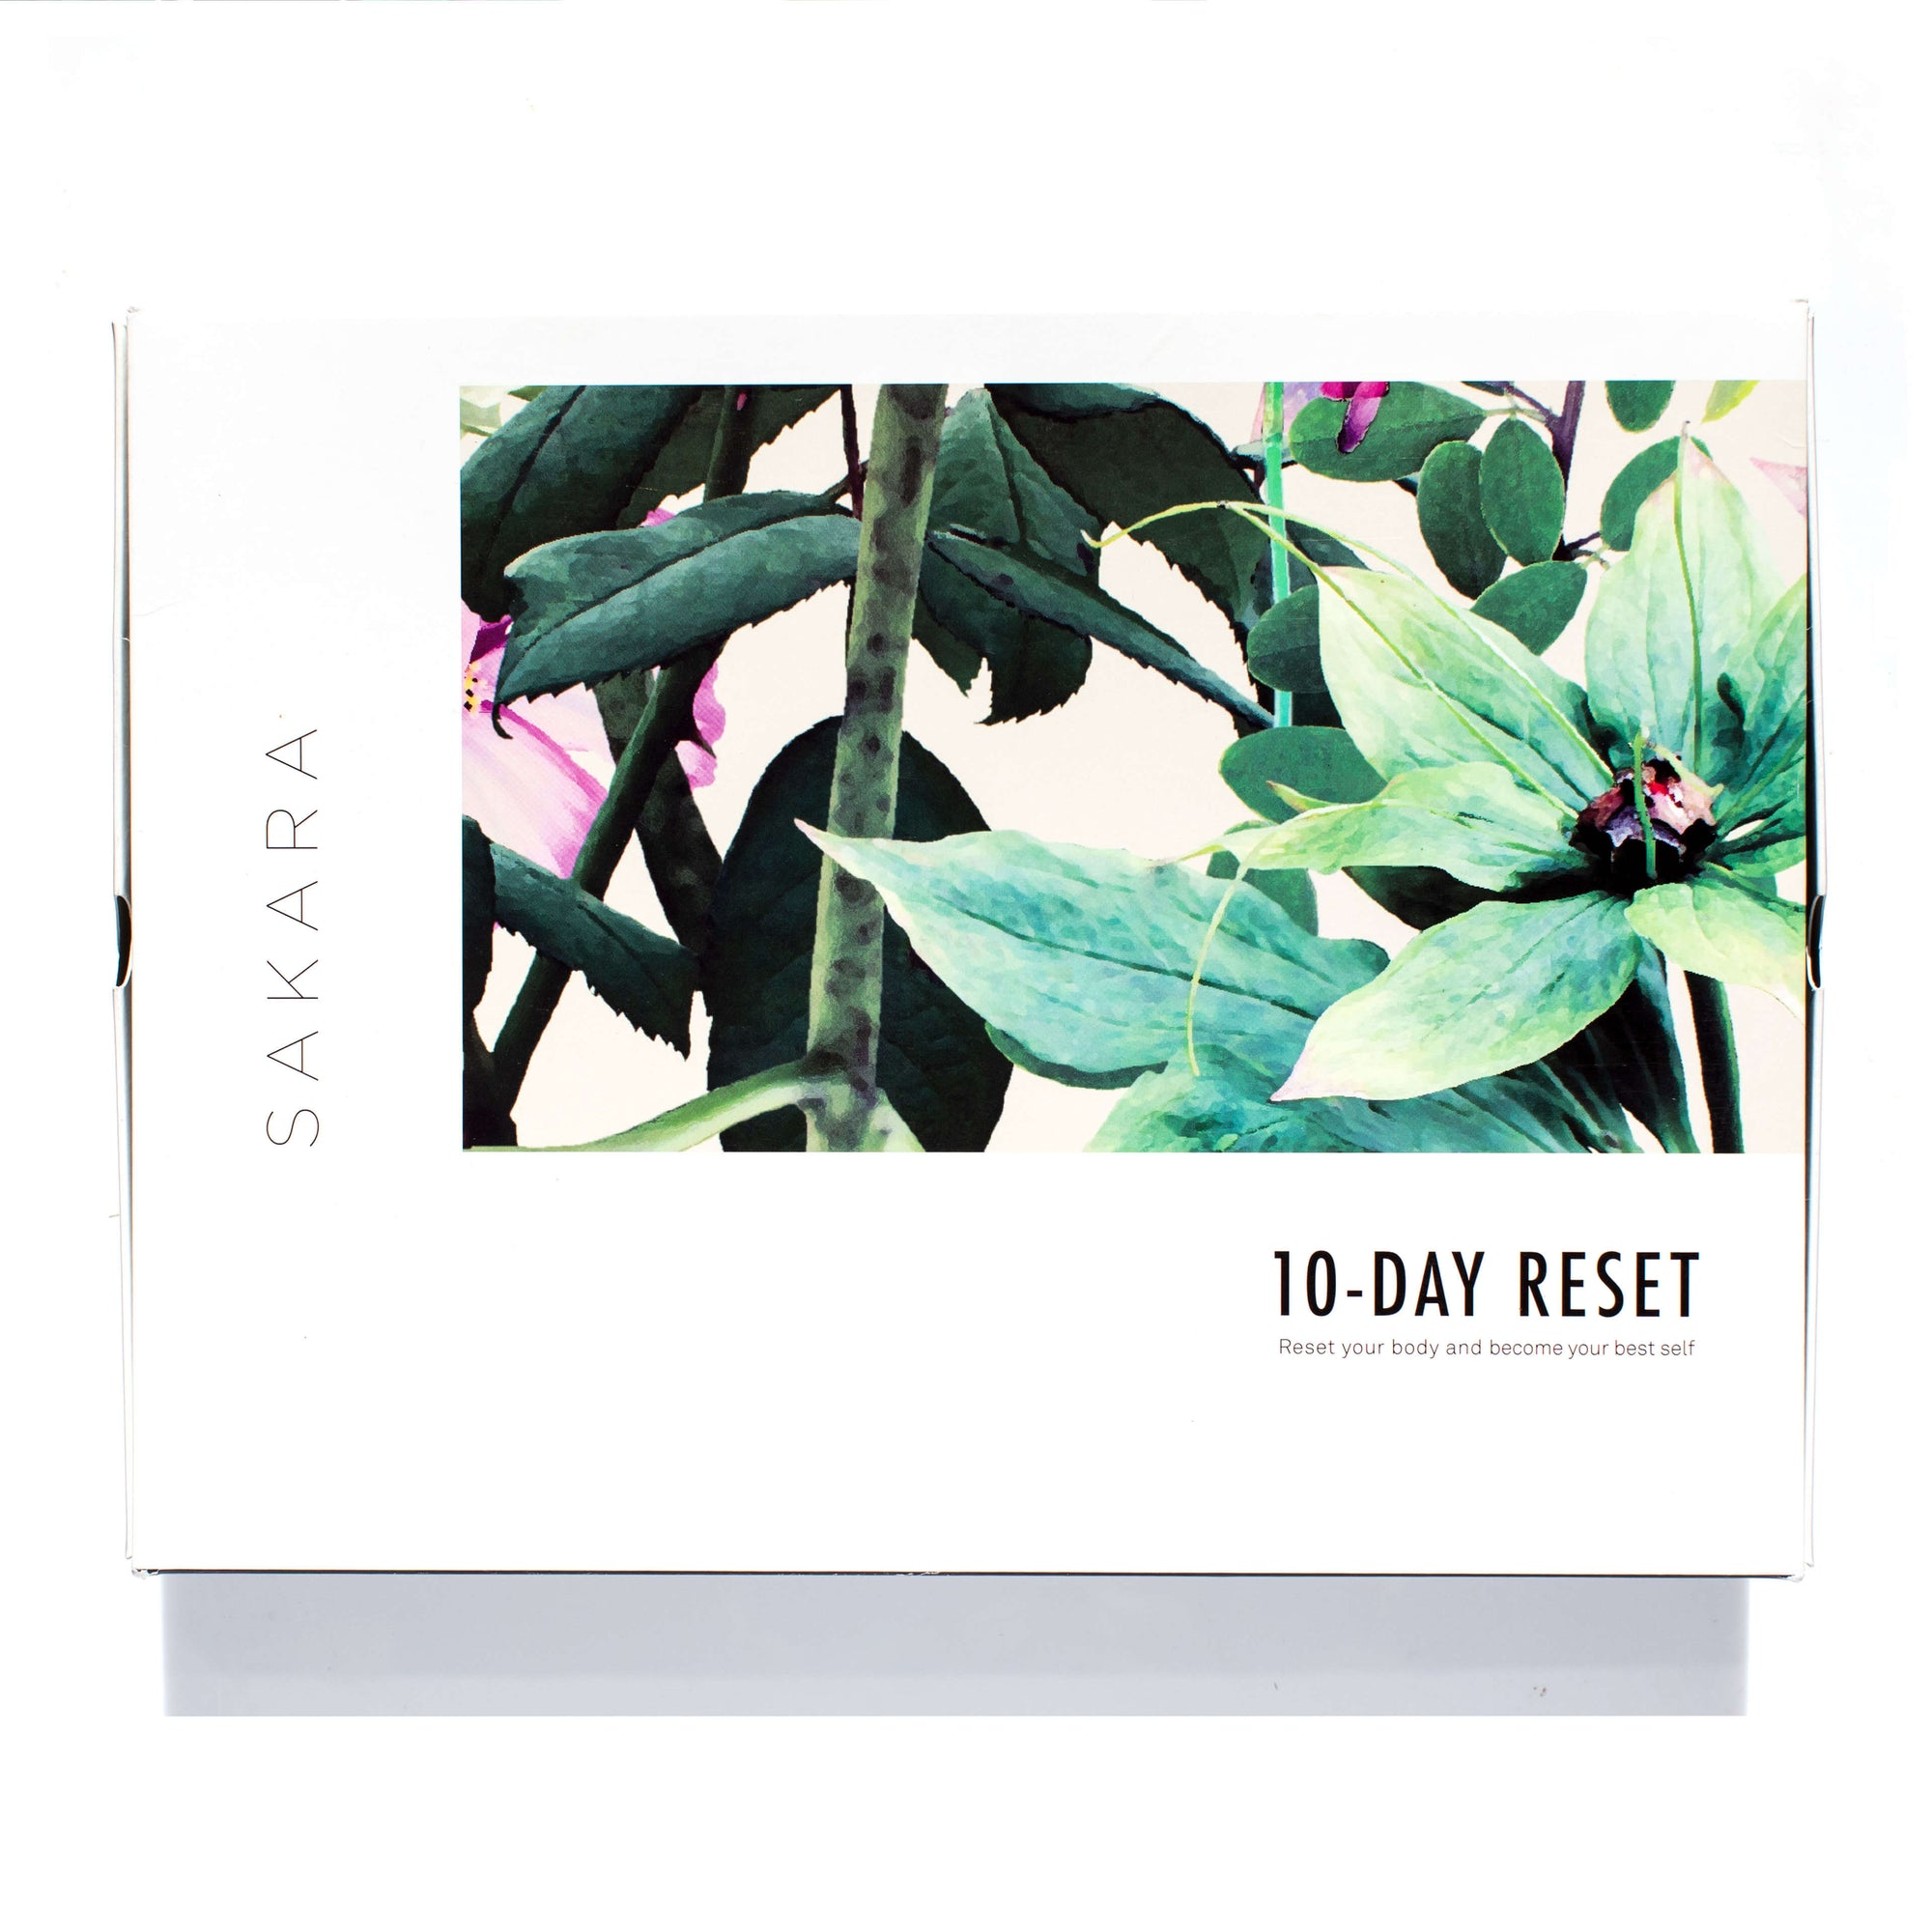 The 10-Day Reset - The 10-Day Reset